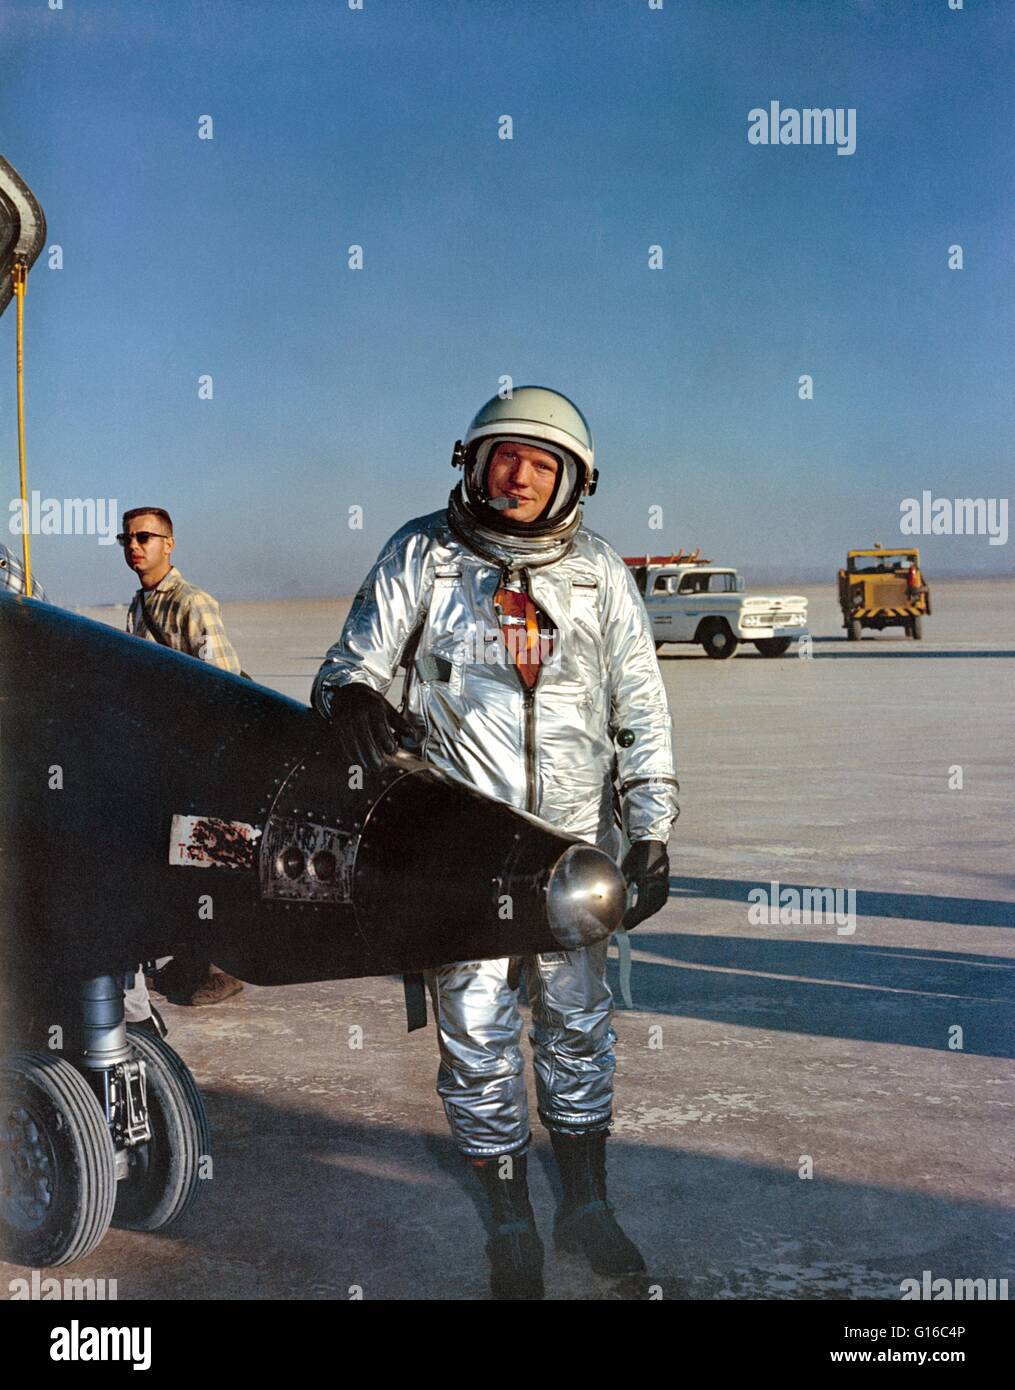 X-15 pilot Armstrong, beside his airplane following a flight at Edwards Air Force Base. Neil Alden Armstrong (August Stock Photo